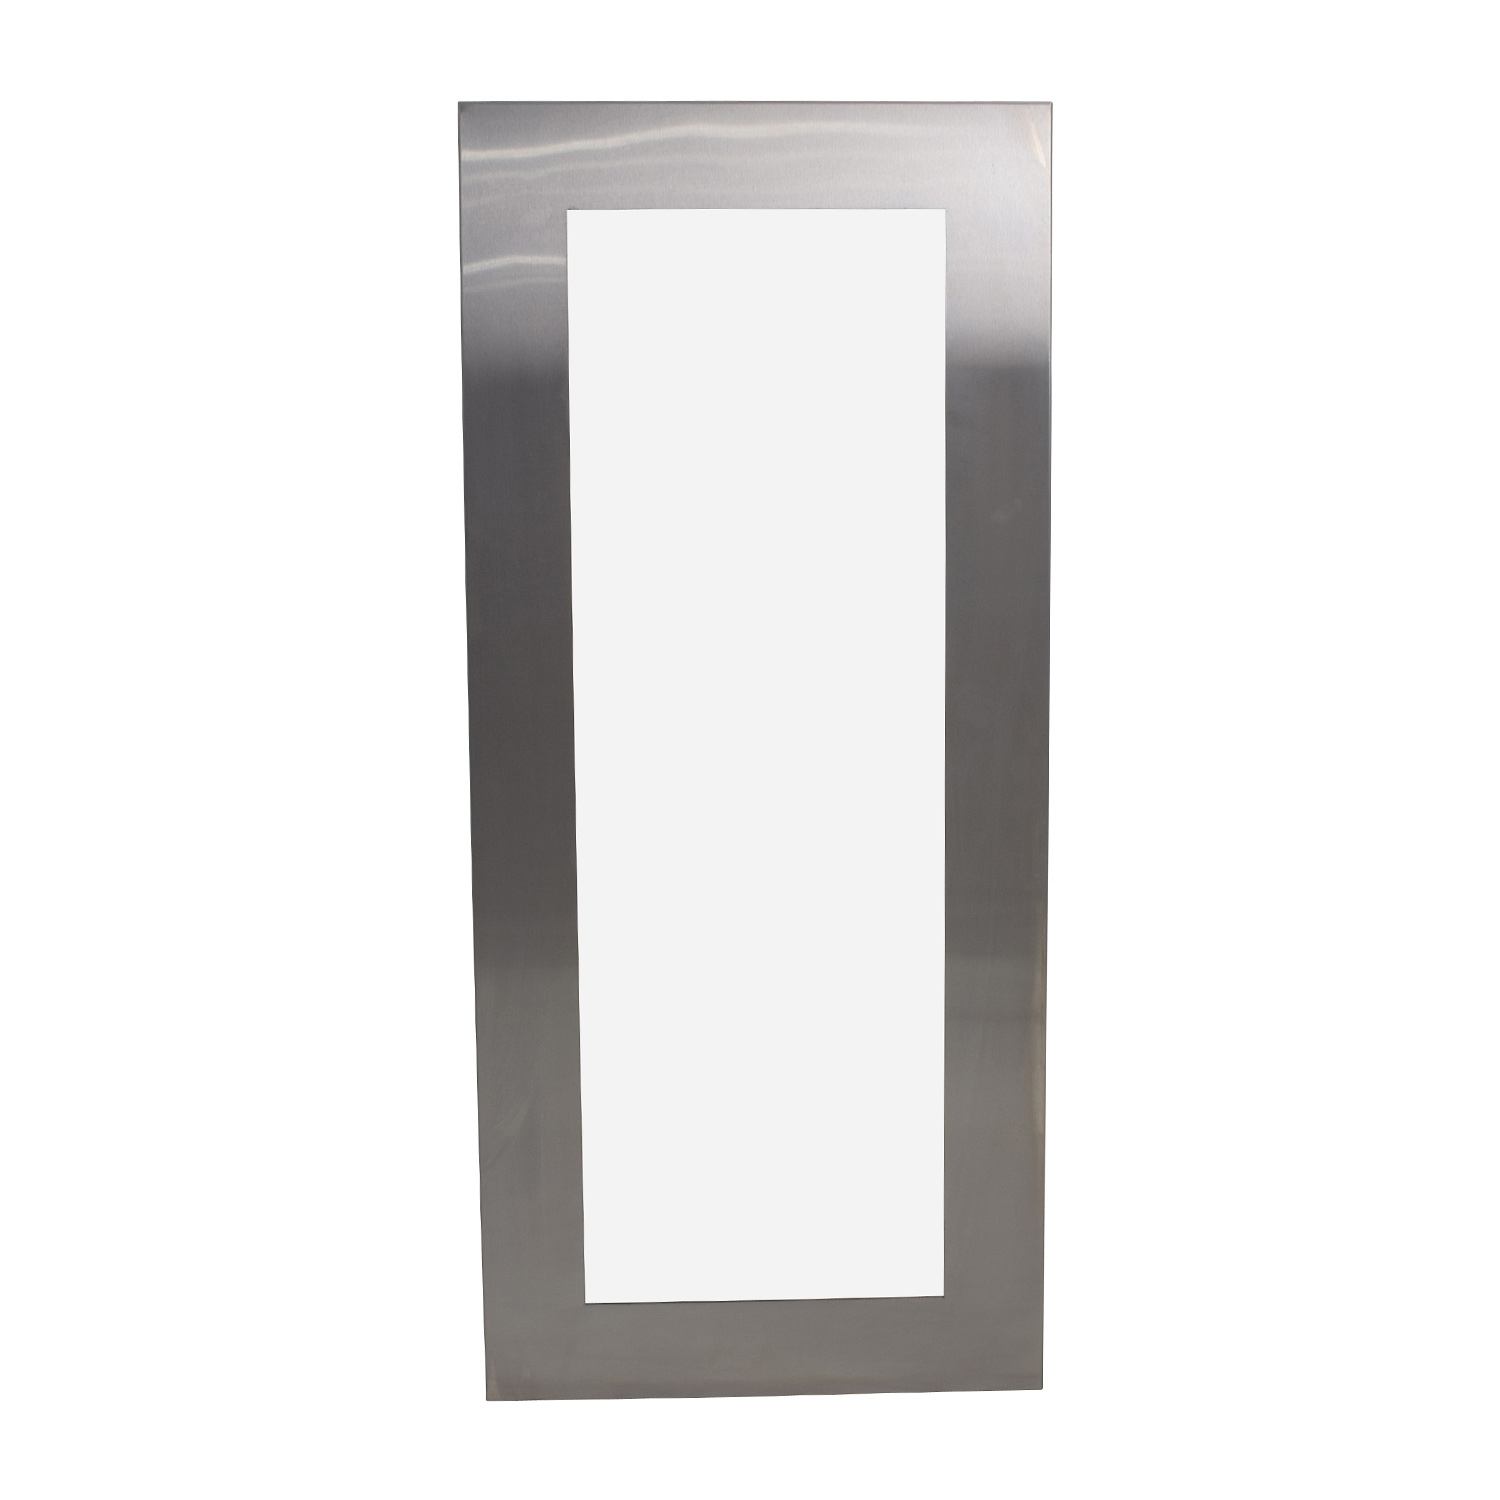 buy Room & Board Stainless Steel Mirror Room and Board Decor